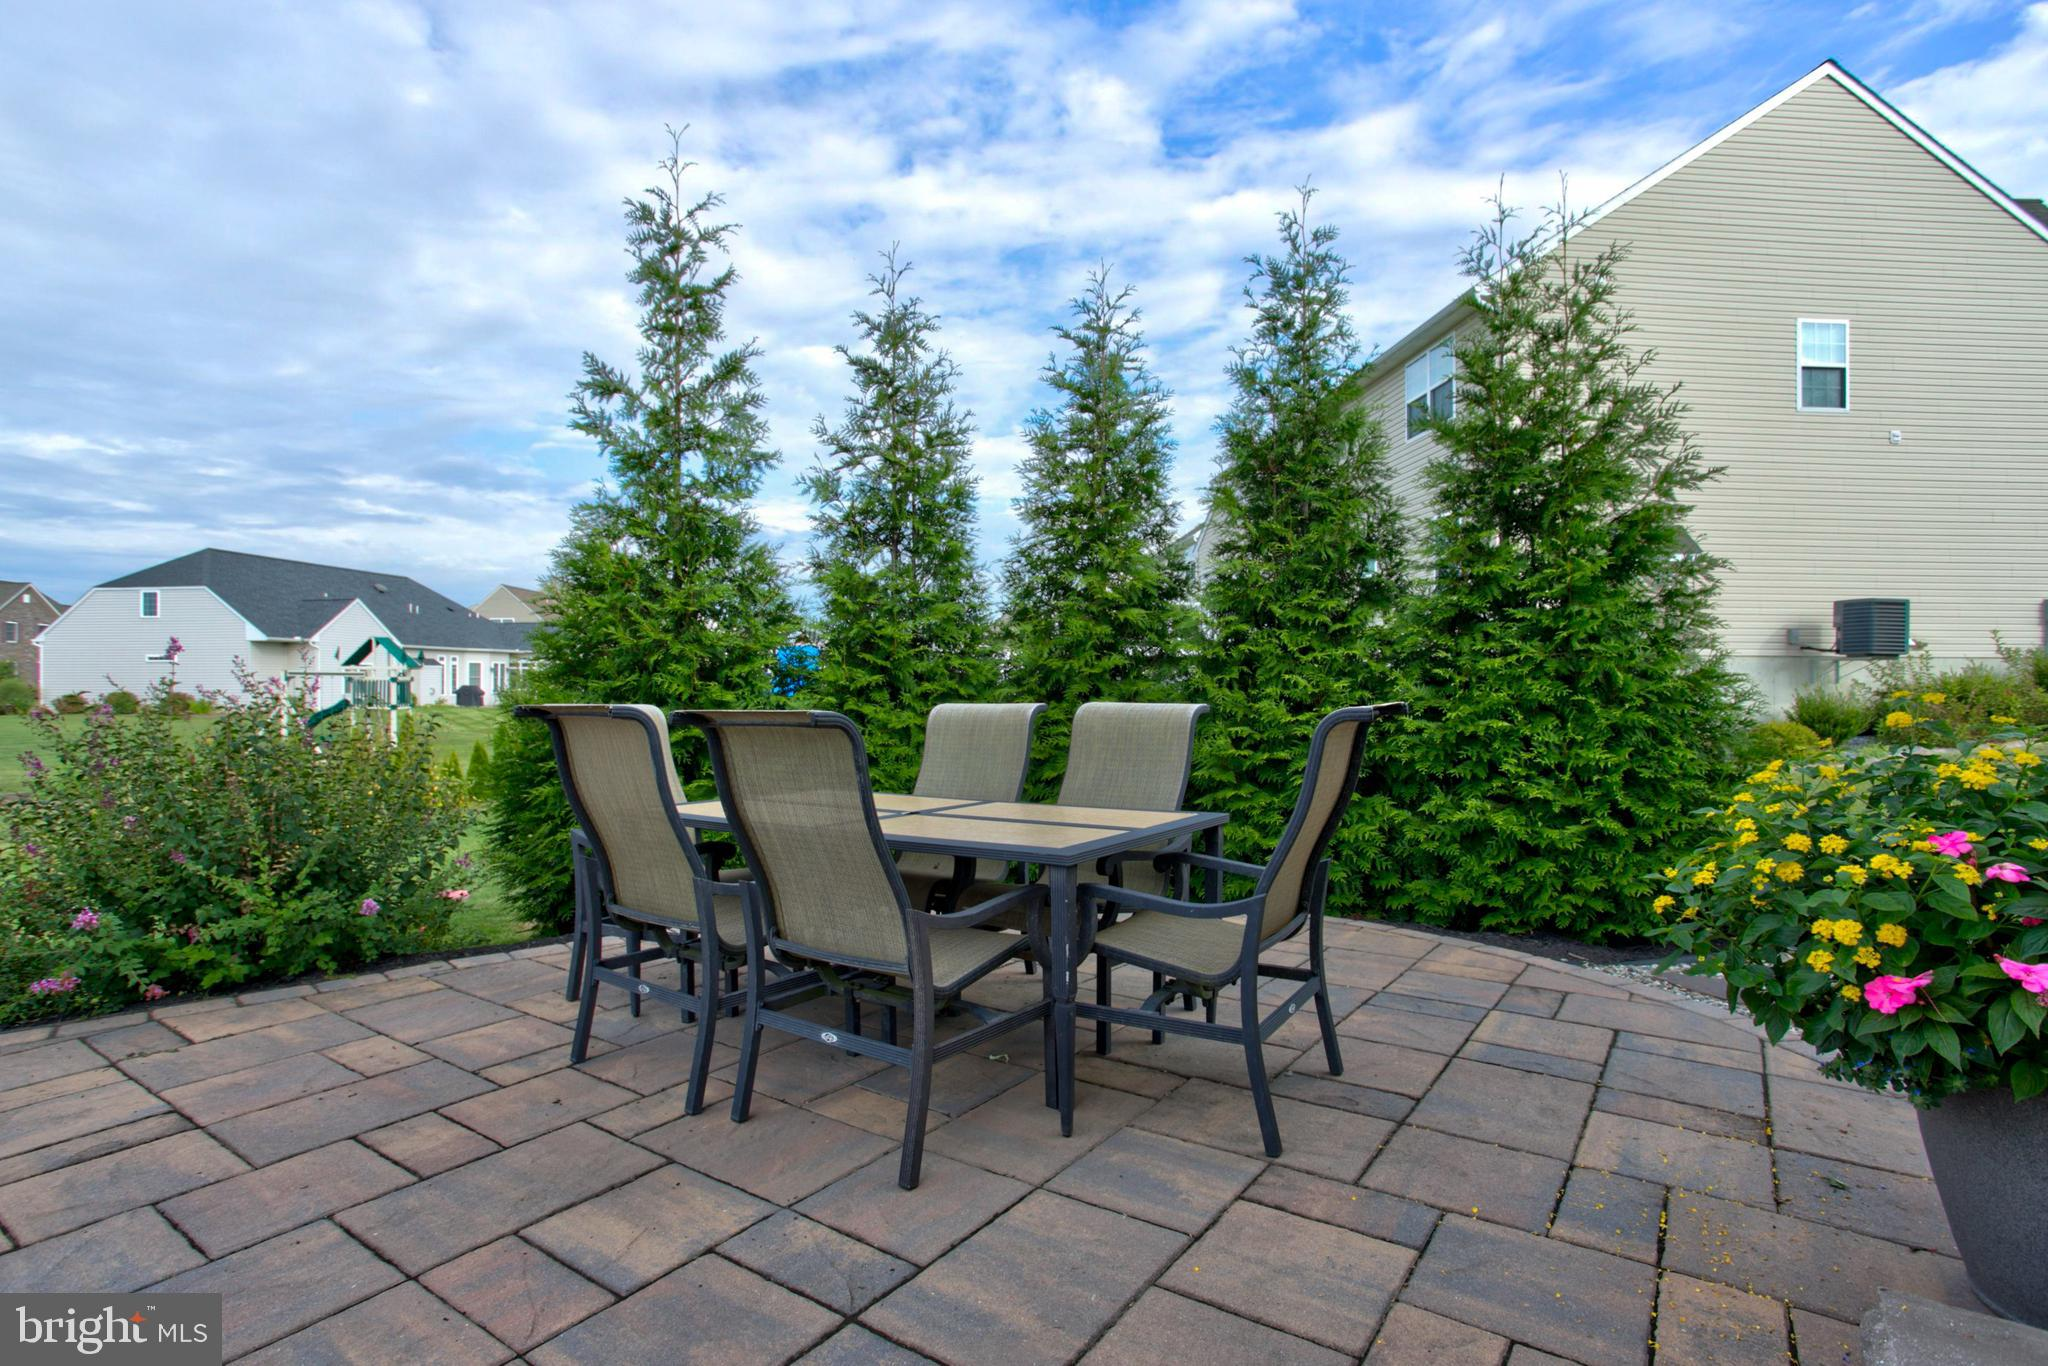 SIde patio area - nicely landscaped for privacy!